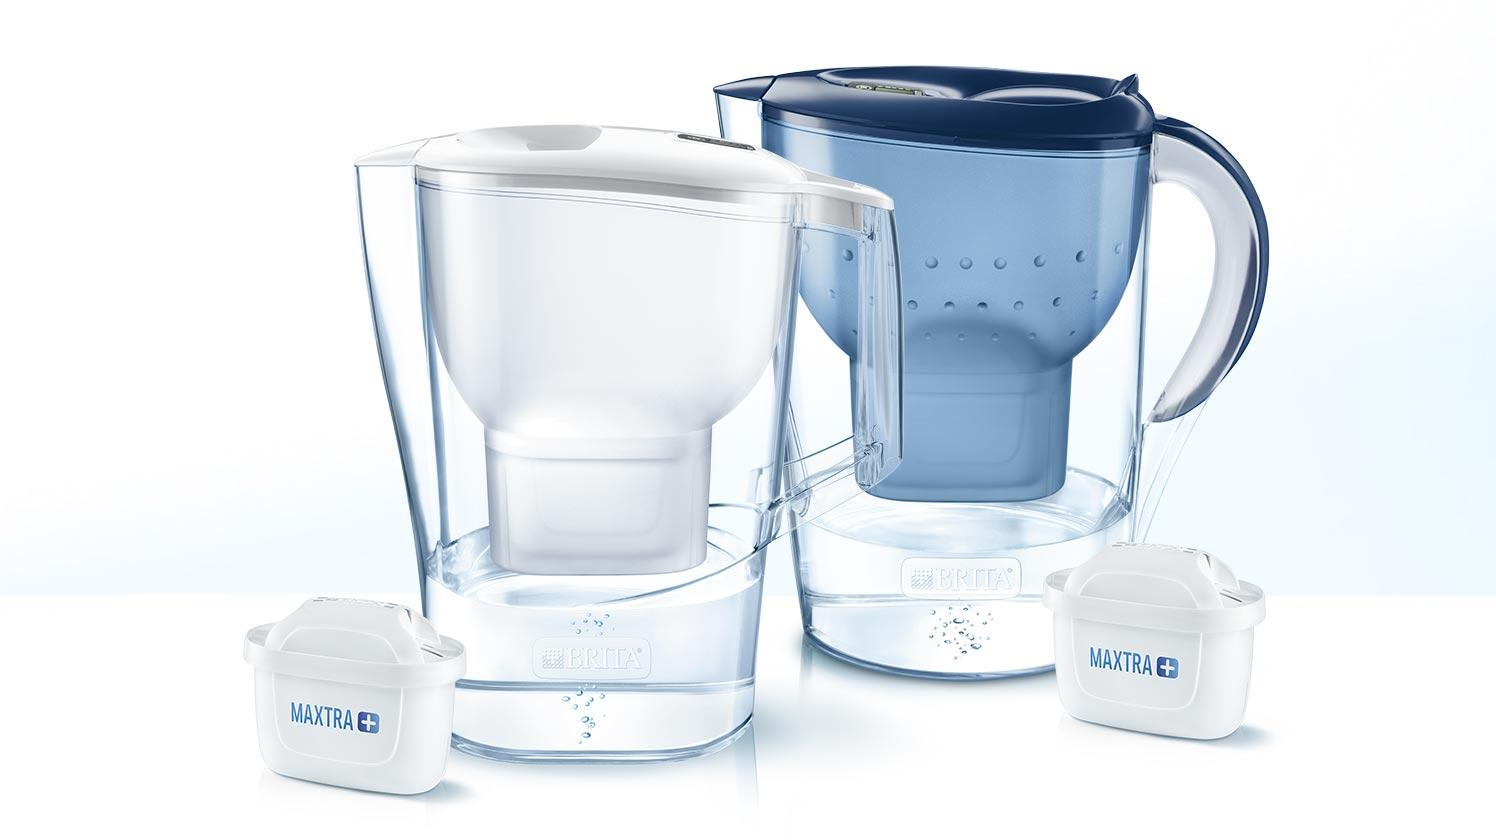 BRITA filters & cartridges MAXTRA+: Packaging